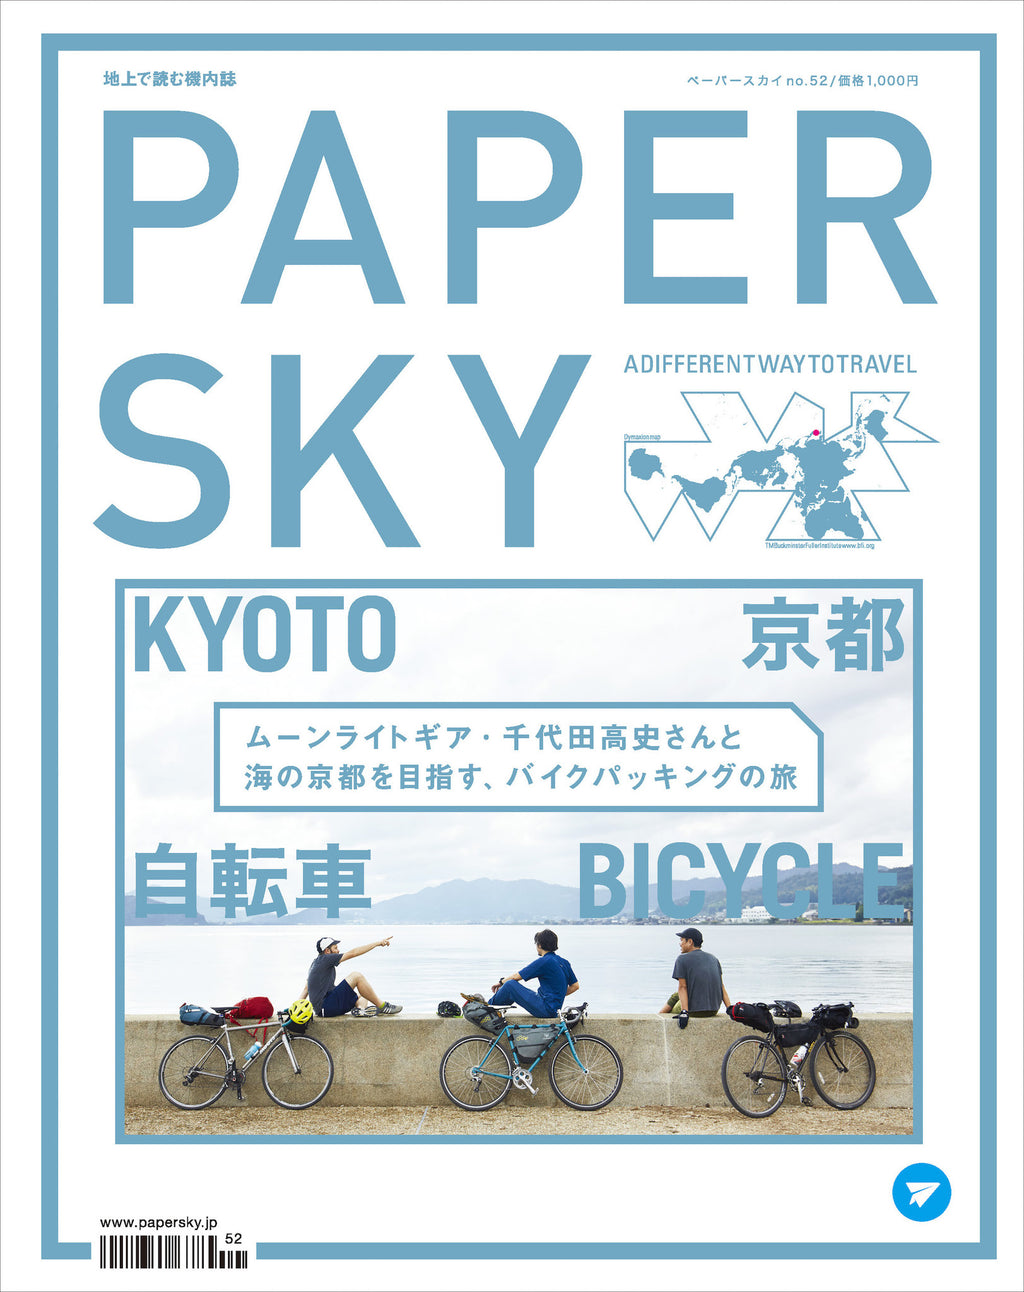 KYOTO | bicycle - PAPERSKY STORE